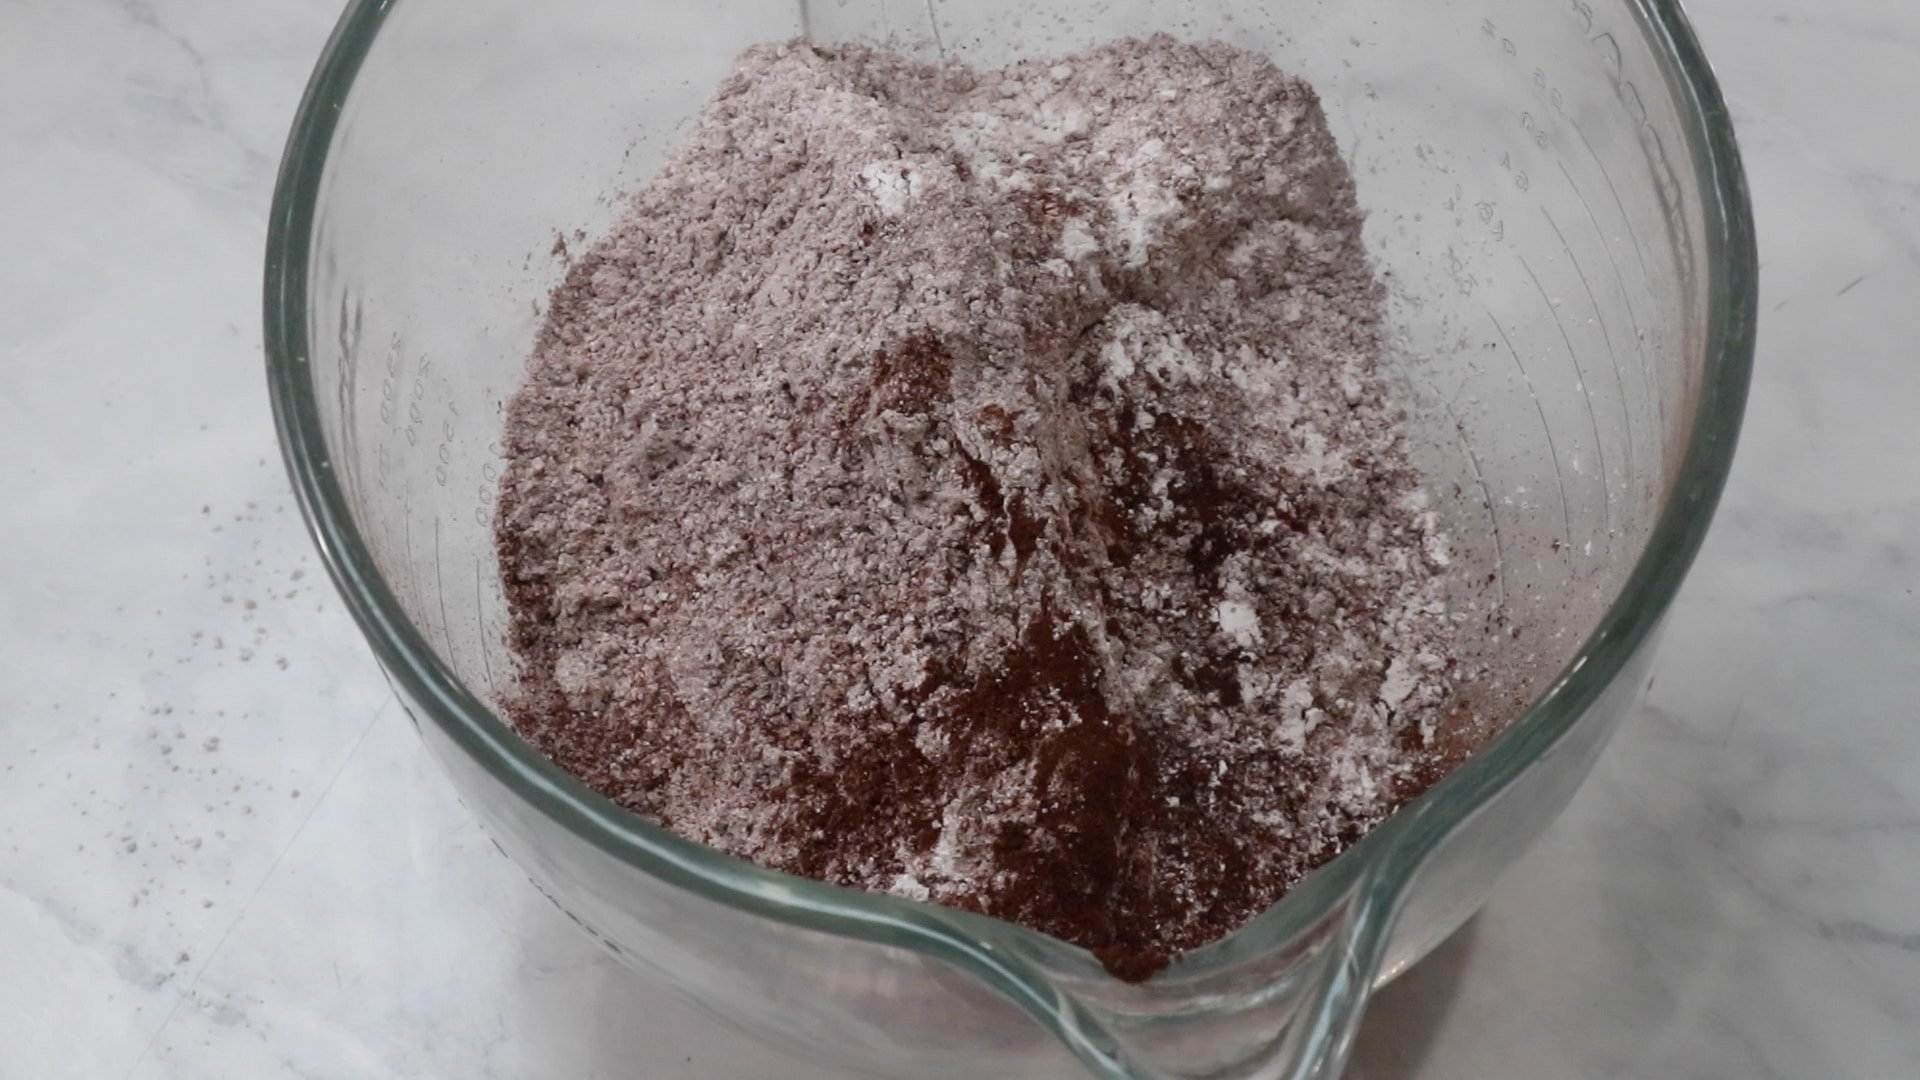 powdered sugar and cocoa powder in clear bowl